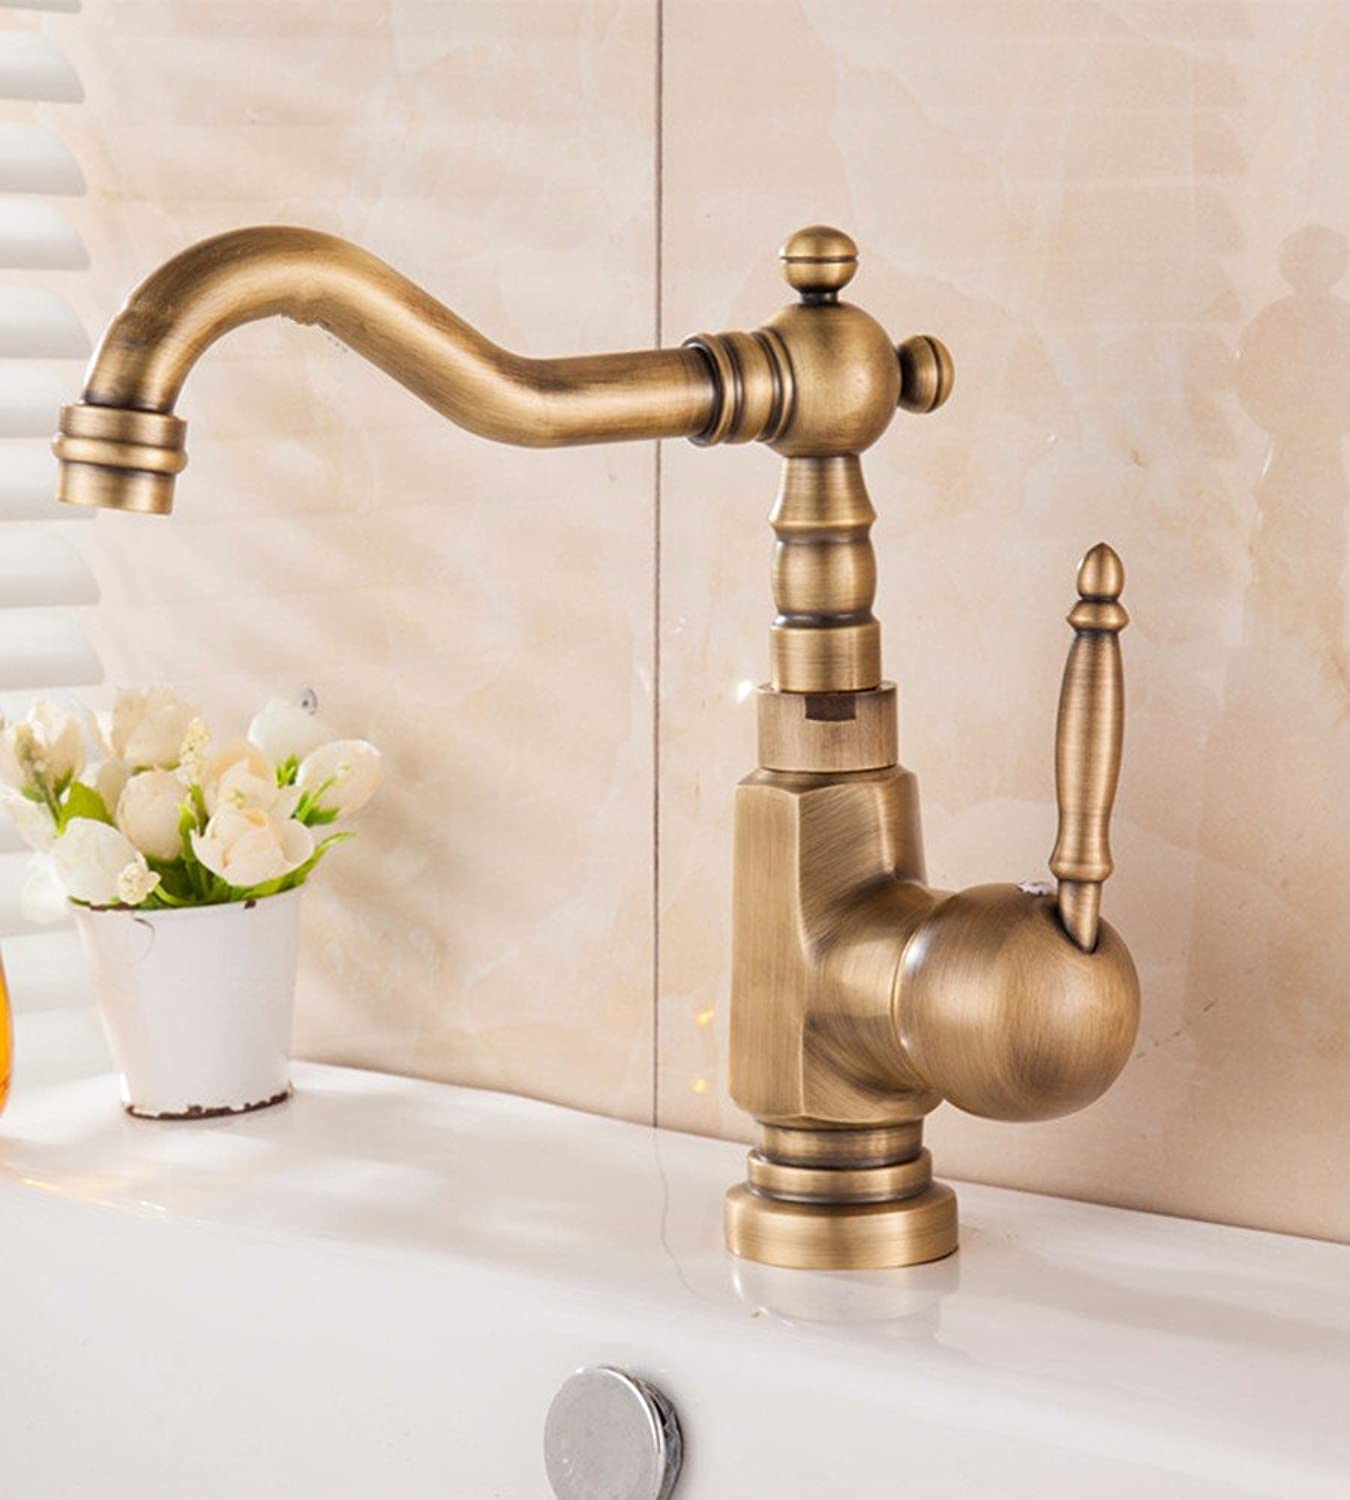 Hlluya Professional Sink Mixer Tap Kitchen Faucet Copper basin bathrooms, hot and cold, Single Hole, Water faucets, 1